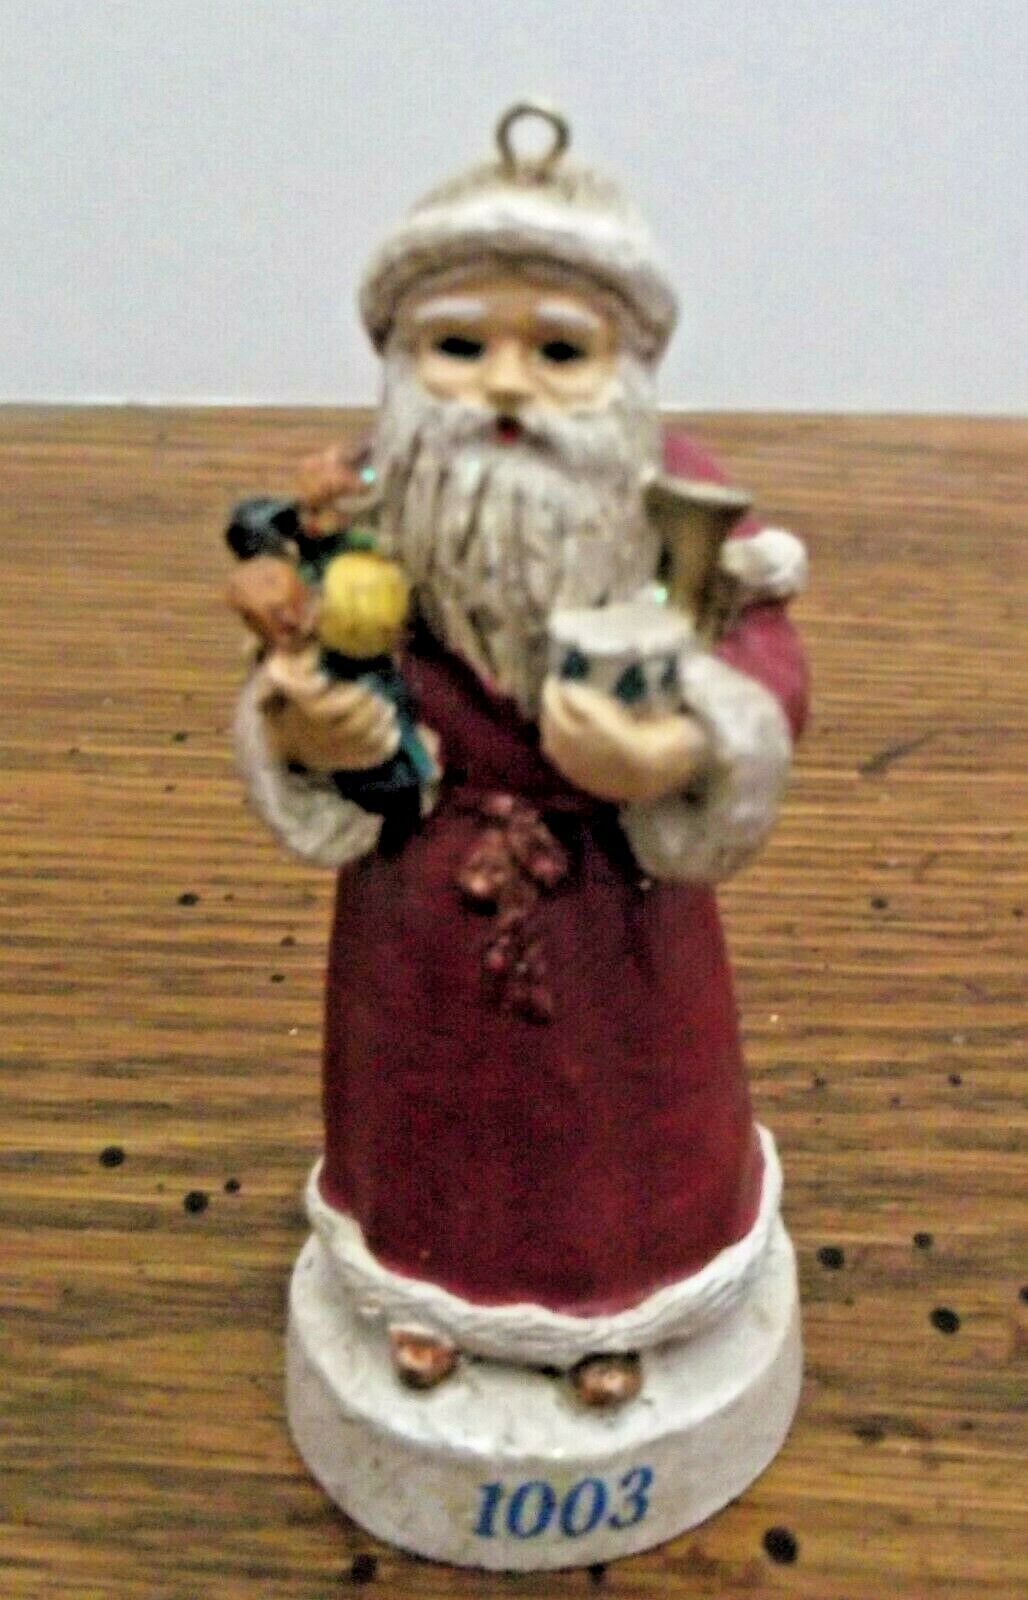 Russ Berrie Old World Santa Ornament Figurine Through The Ages 1003  - $6.92